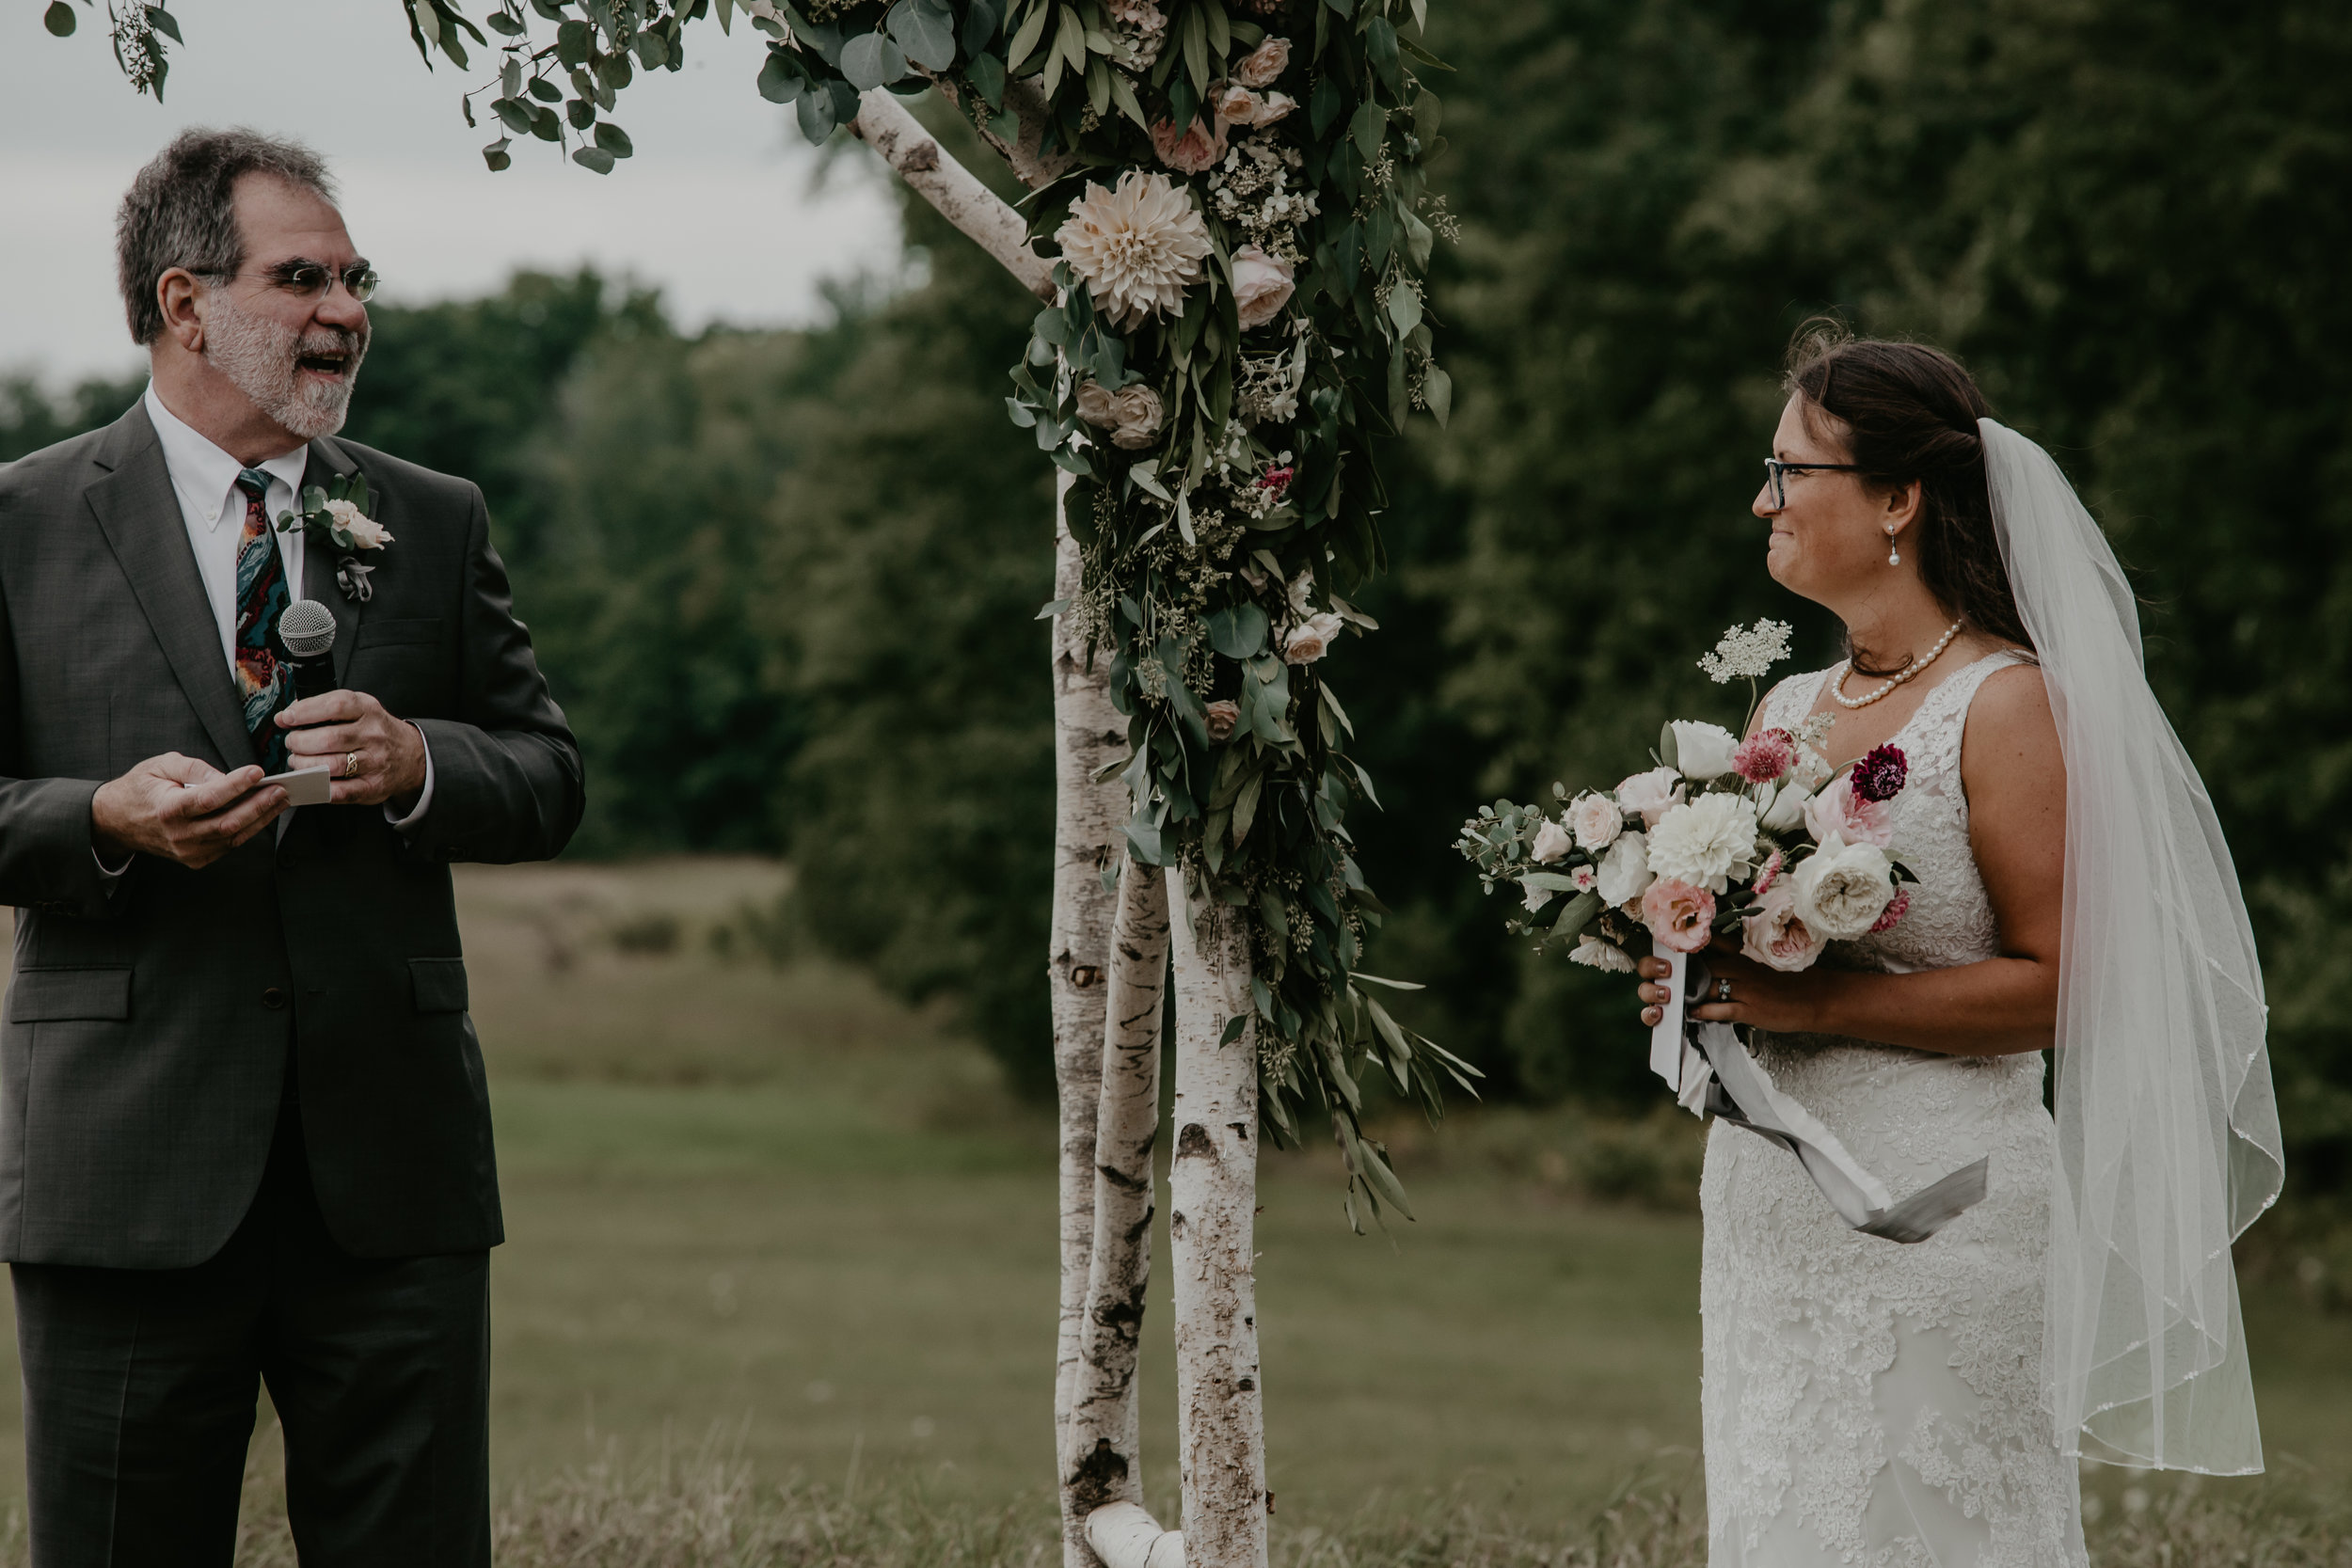 Watershed_Floral_Broadturn_Farm_Maine_Summer_Wedding_31 2.jpg